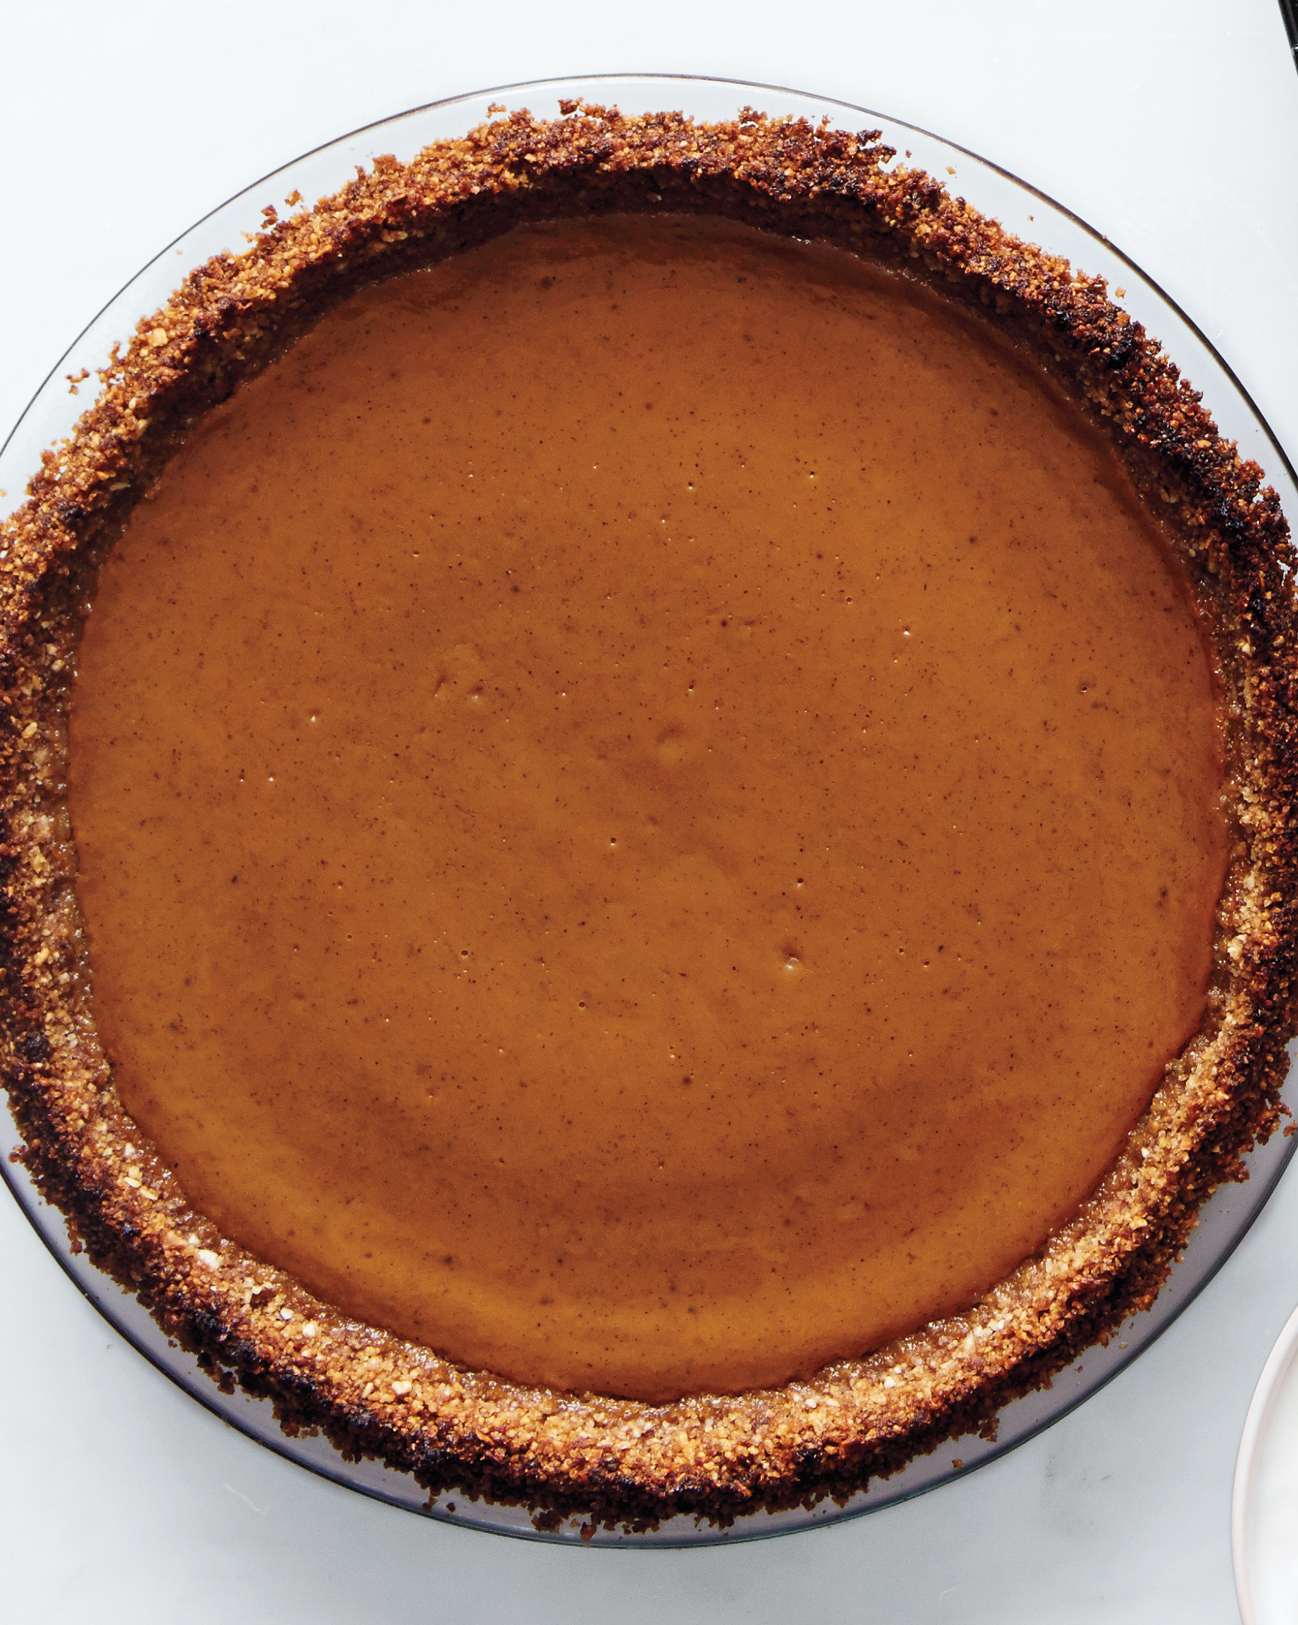 pumpkin-pie-gluten-free-pumpkin-vegan-apple-pie-d112284.jpg